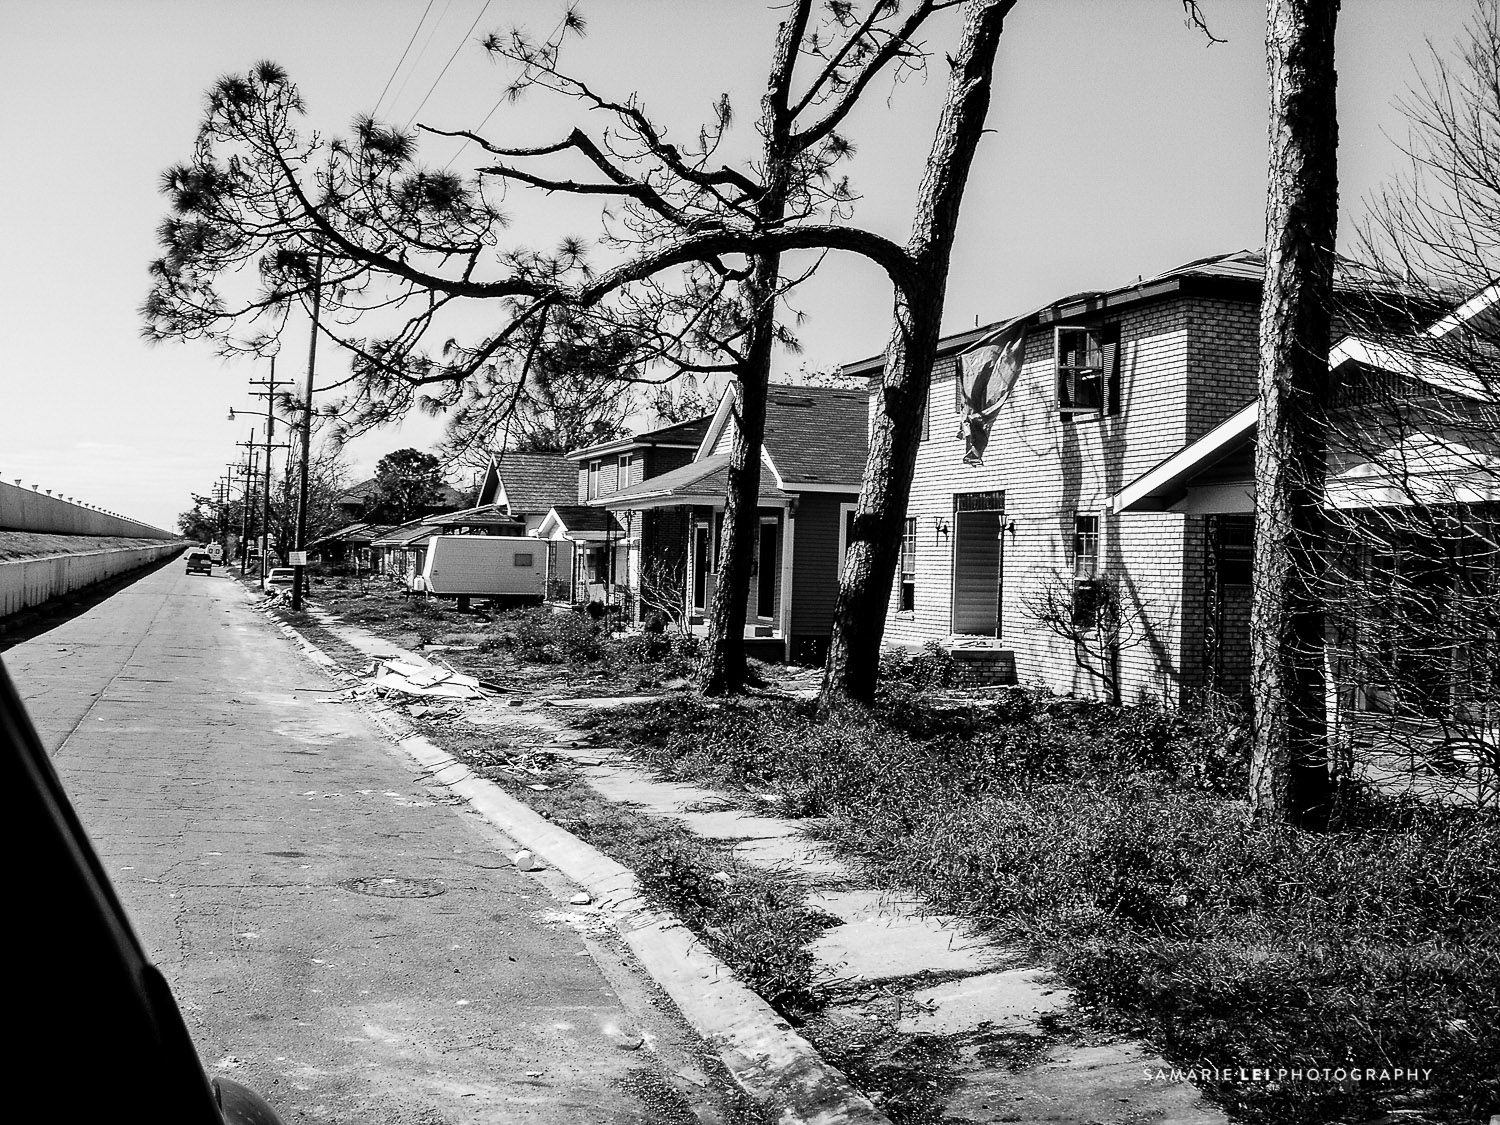 New-Orleans-Katrina-2005-Photography-Neighborhoods-10.jpg